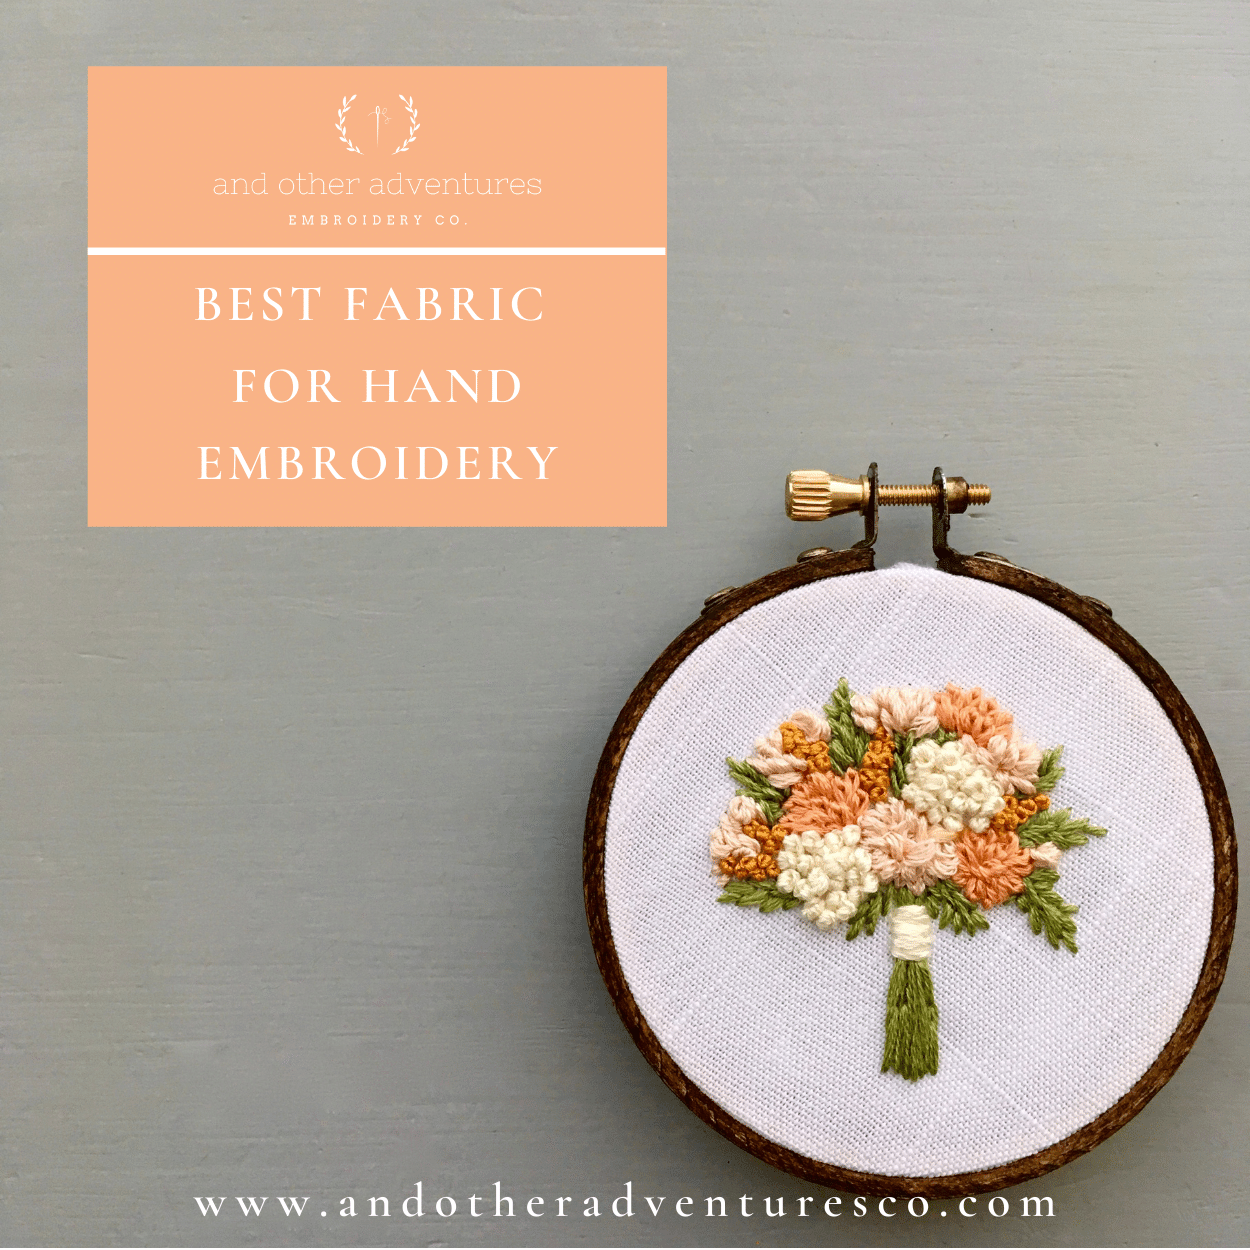 Choosing the best fabric for your hand embroidery project | And Other Adventures Embroidery Co